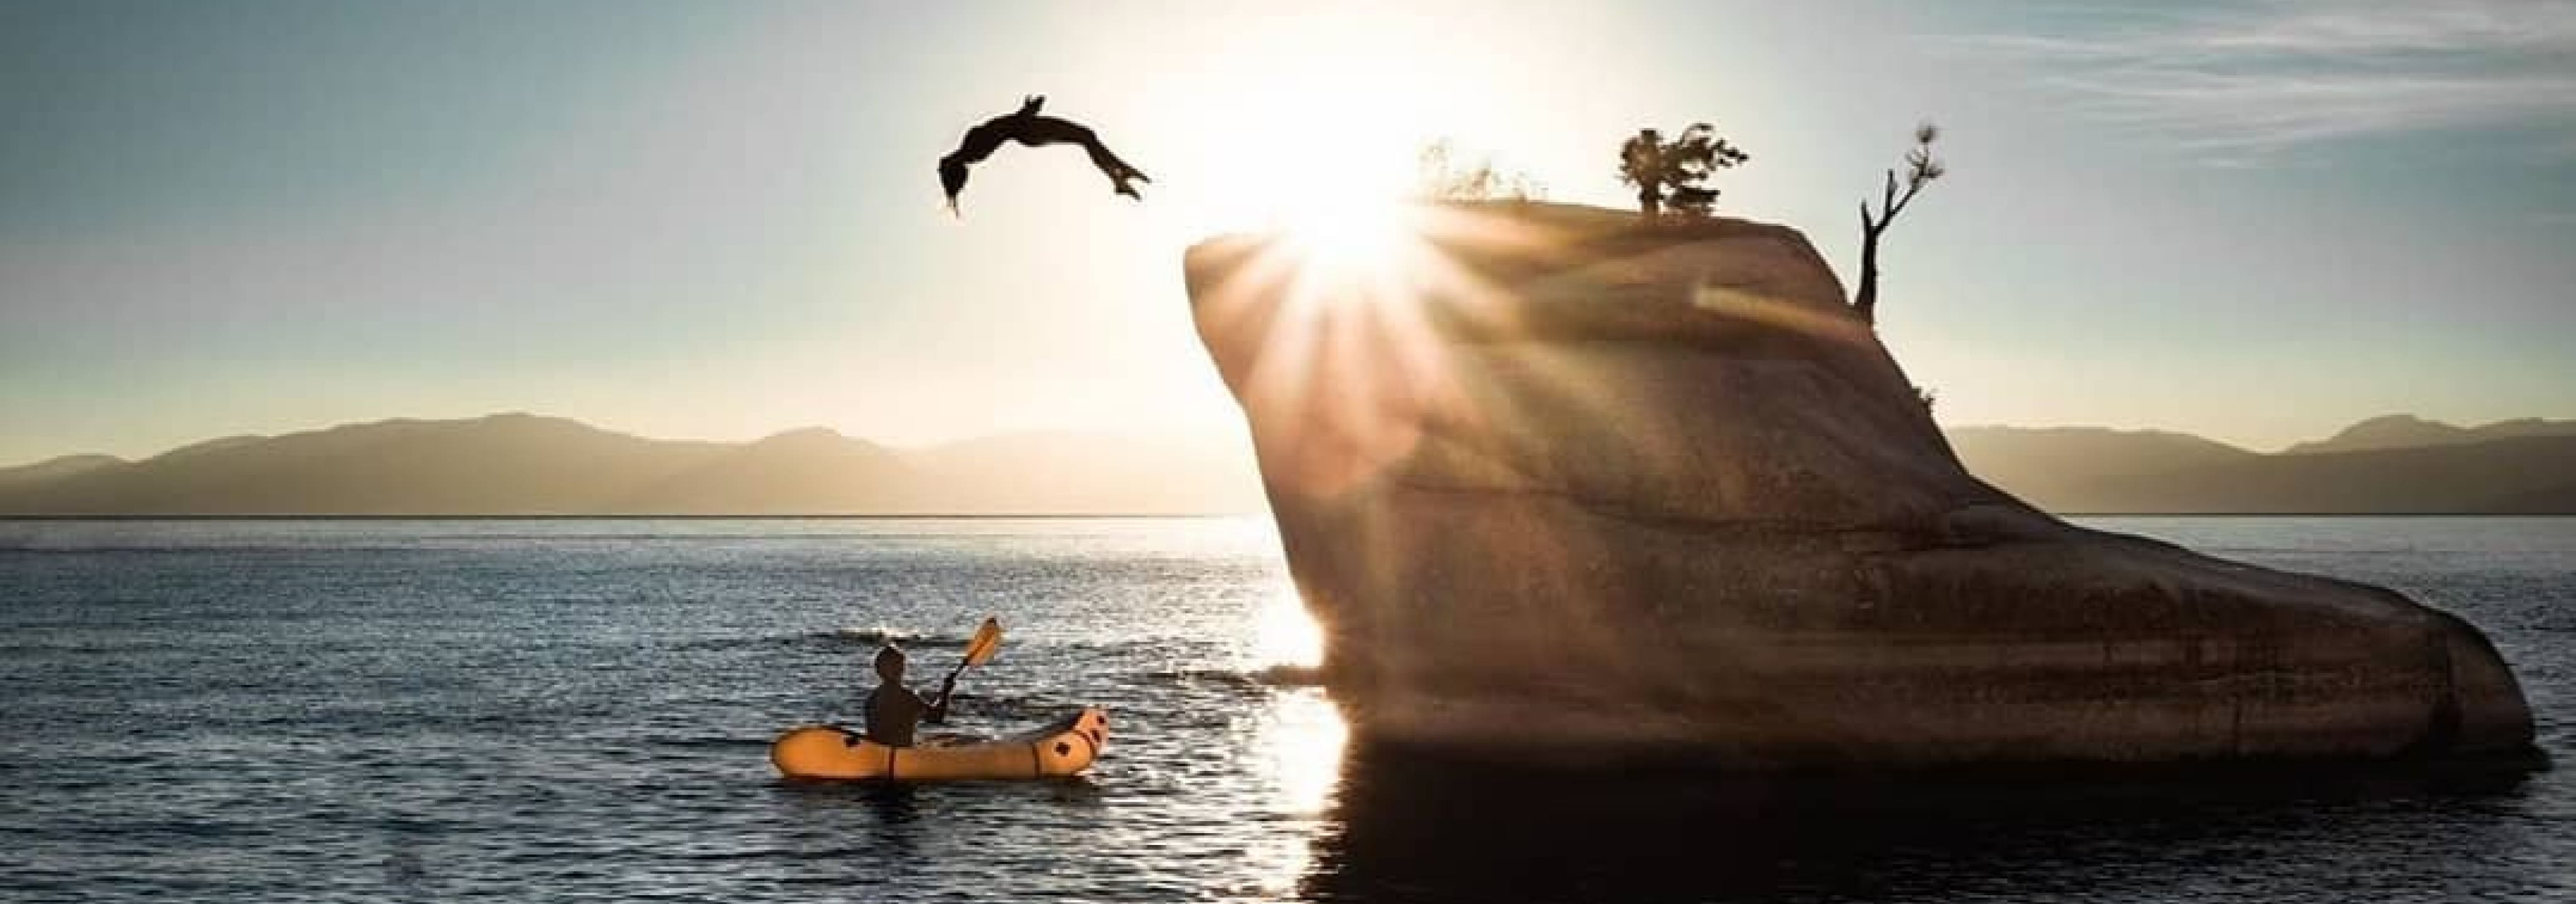 Instagram image showing a diver jumping off a small rock outcrop into the ocean.